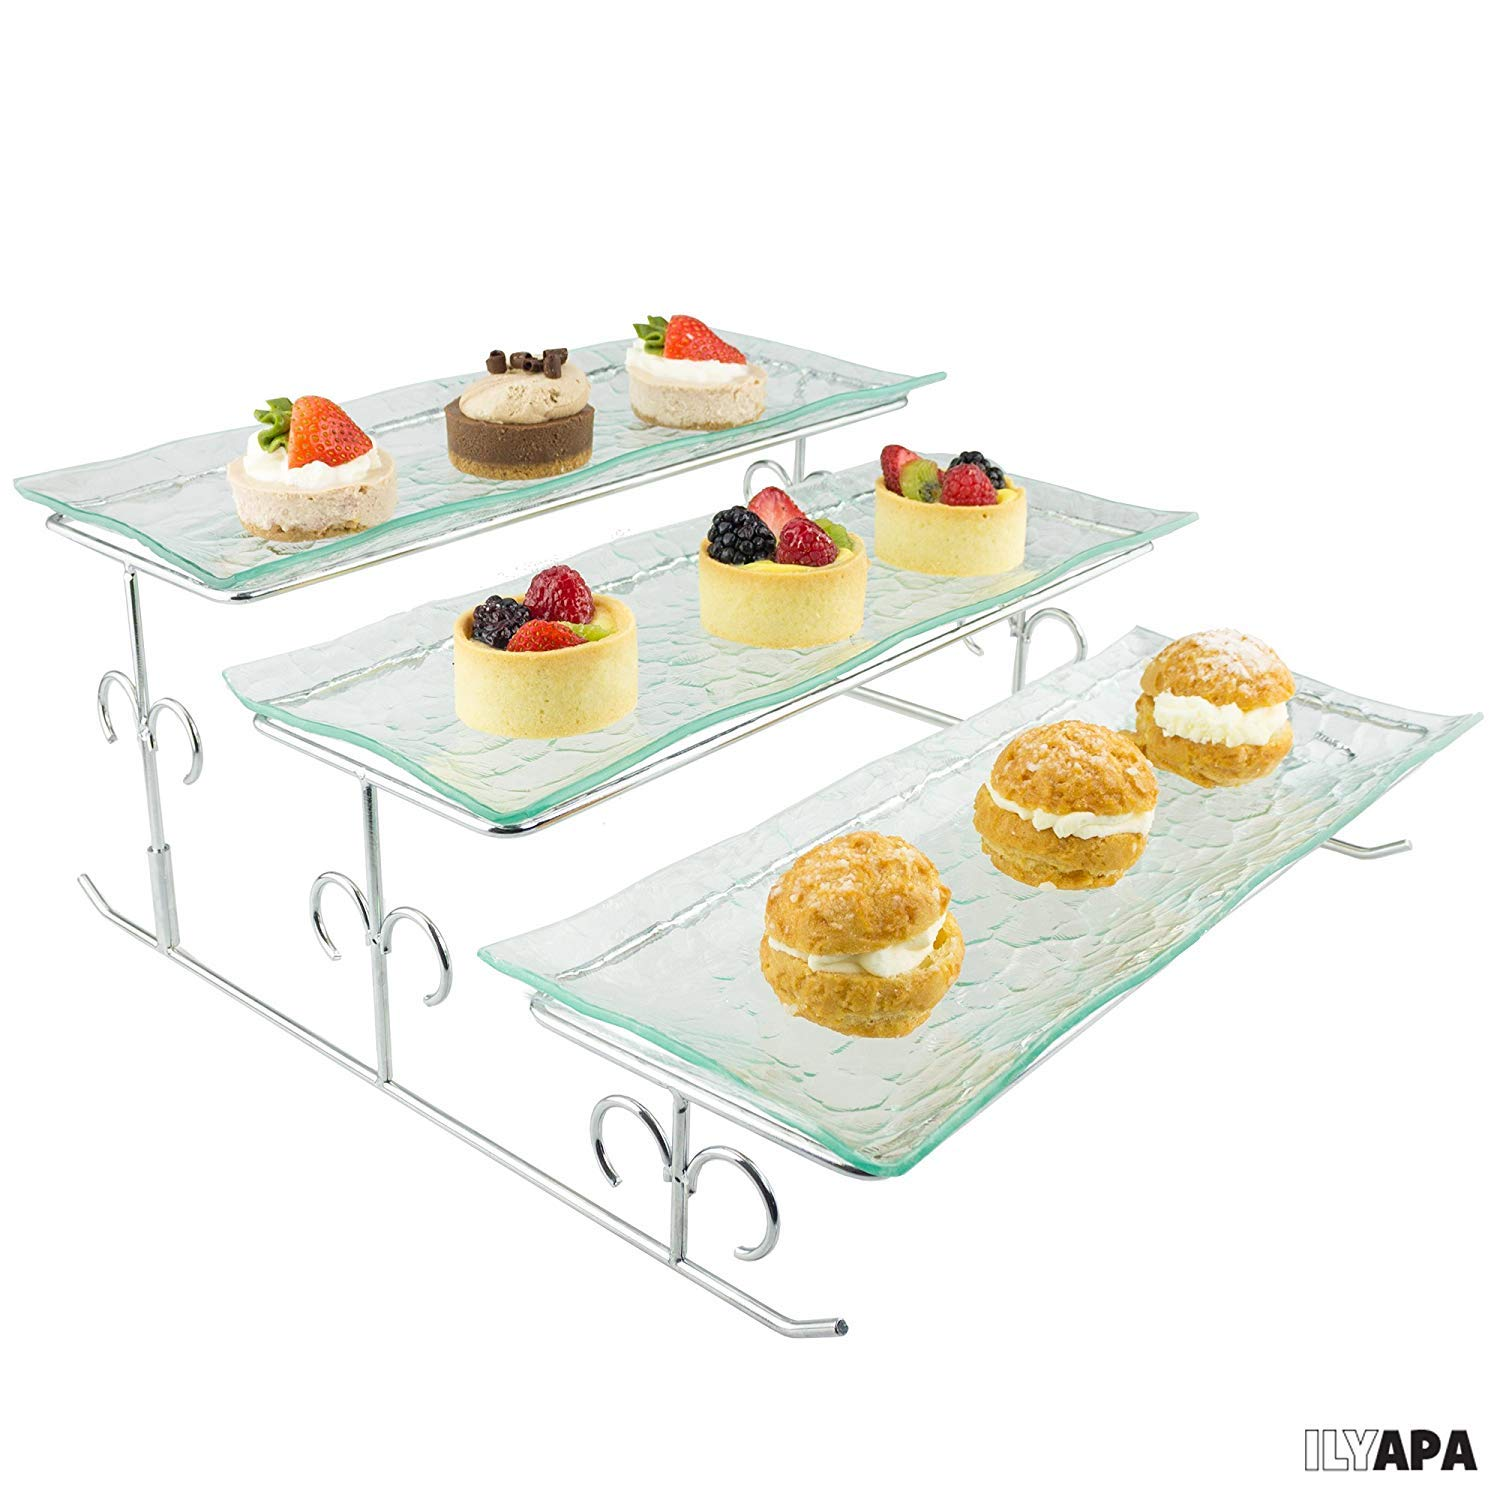 Tiered Serving Platter Appetizers /& More 2 Tier Server Stand with Bowls /& Tray Shrimp Perfect for Cake Dessert